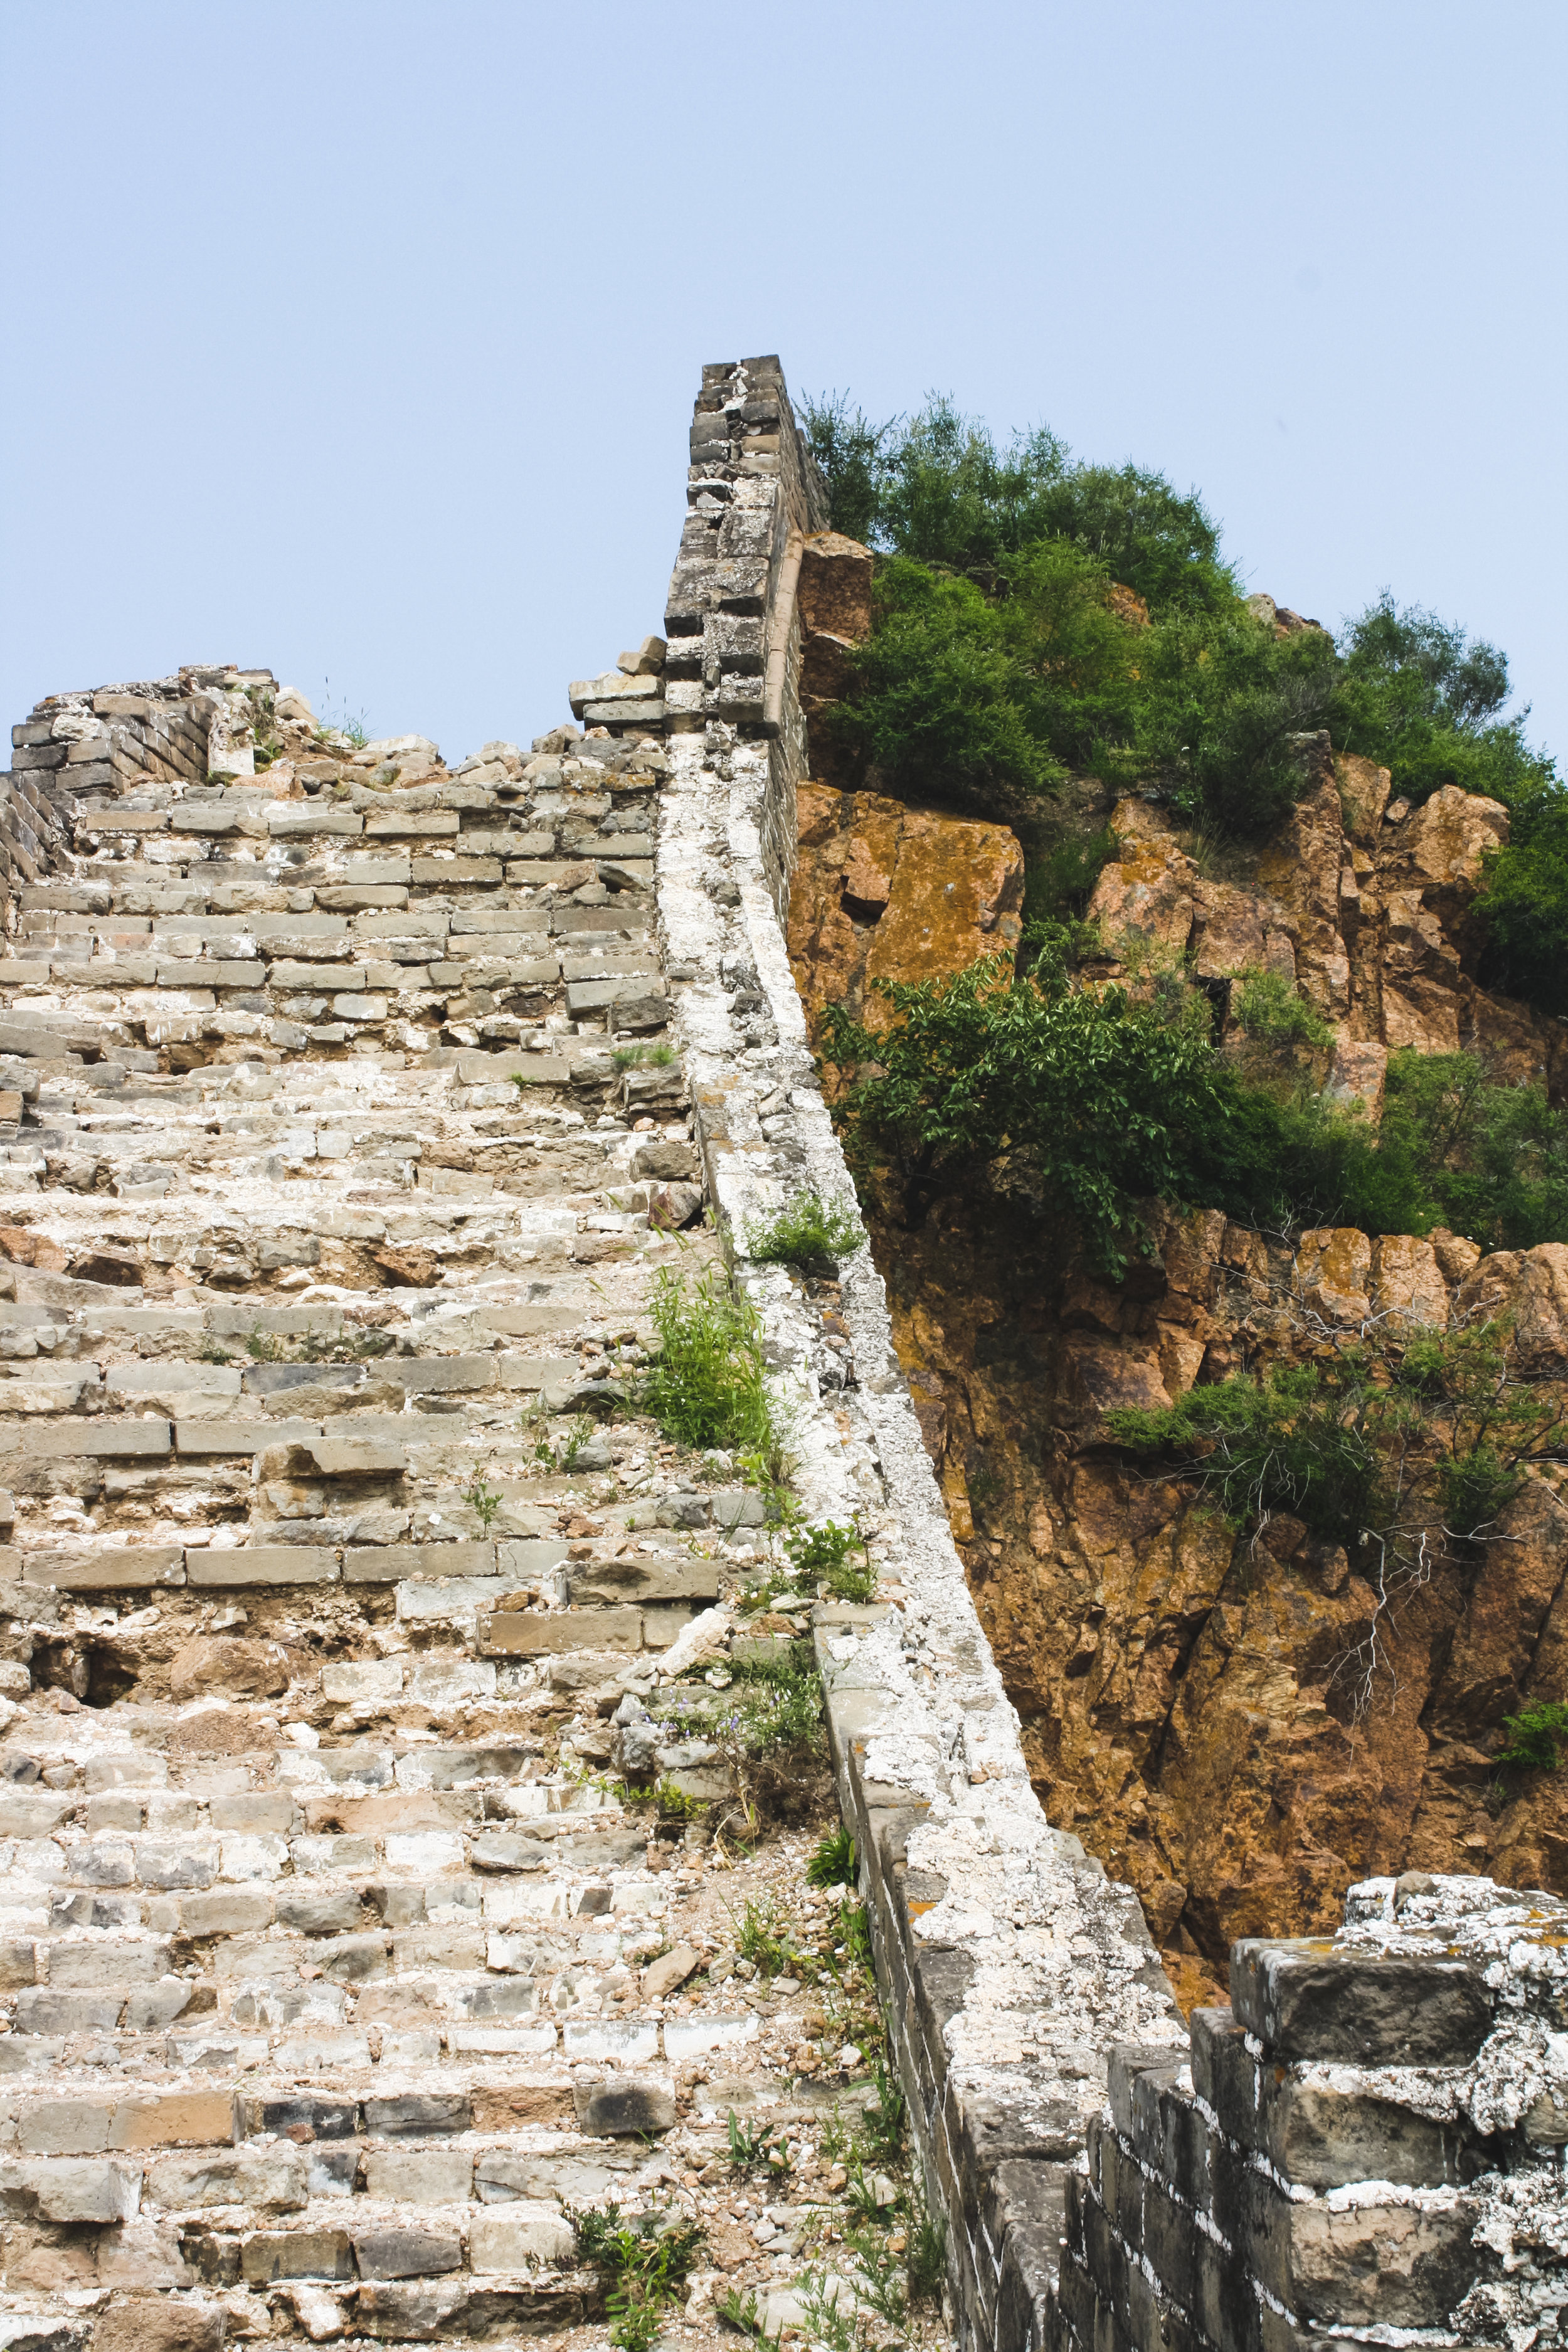 What section of the Great Wall should I visit?